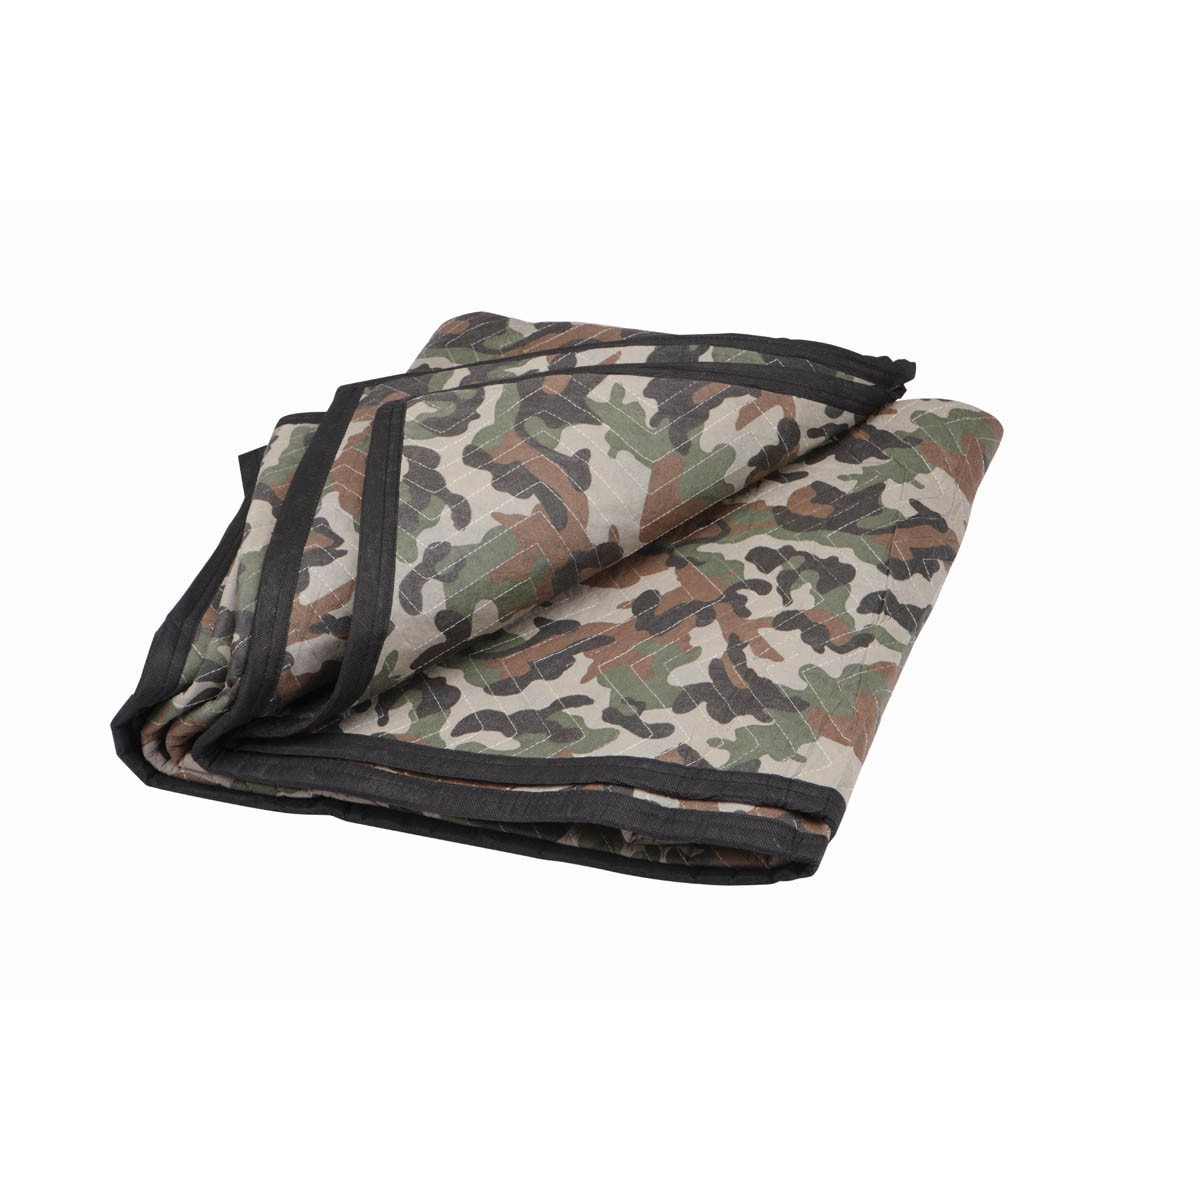 72 in. x 80 in. Camouflage Utility Cover by